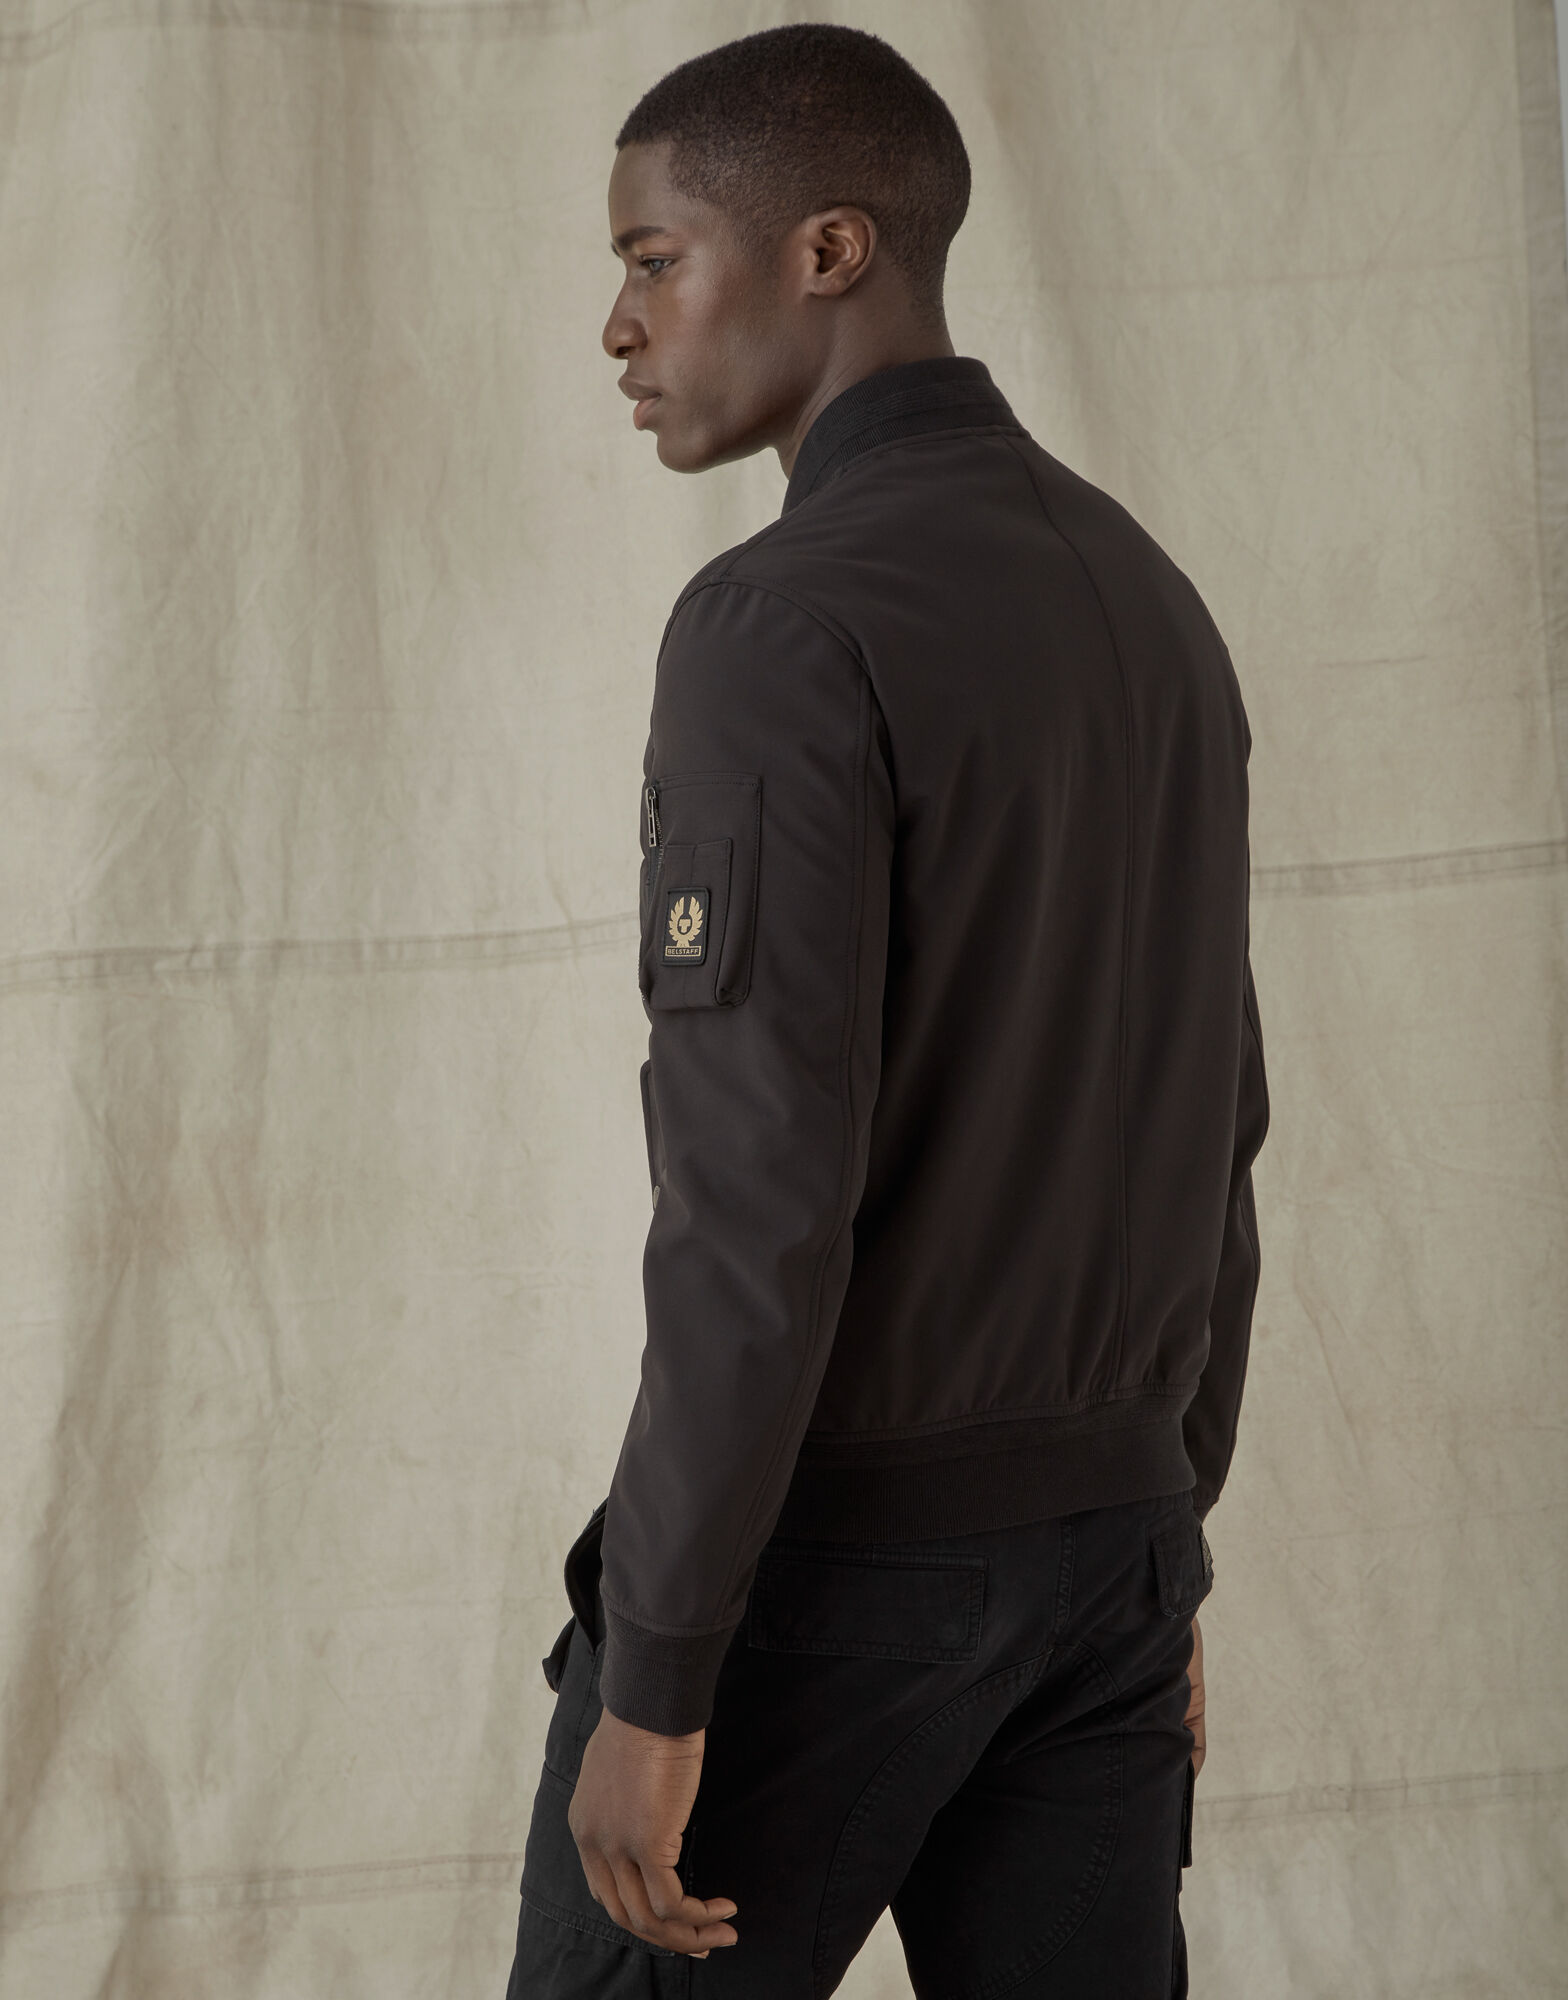 The men's Mantle Jacket gives you warmth without weighing you down.